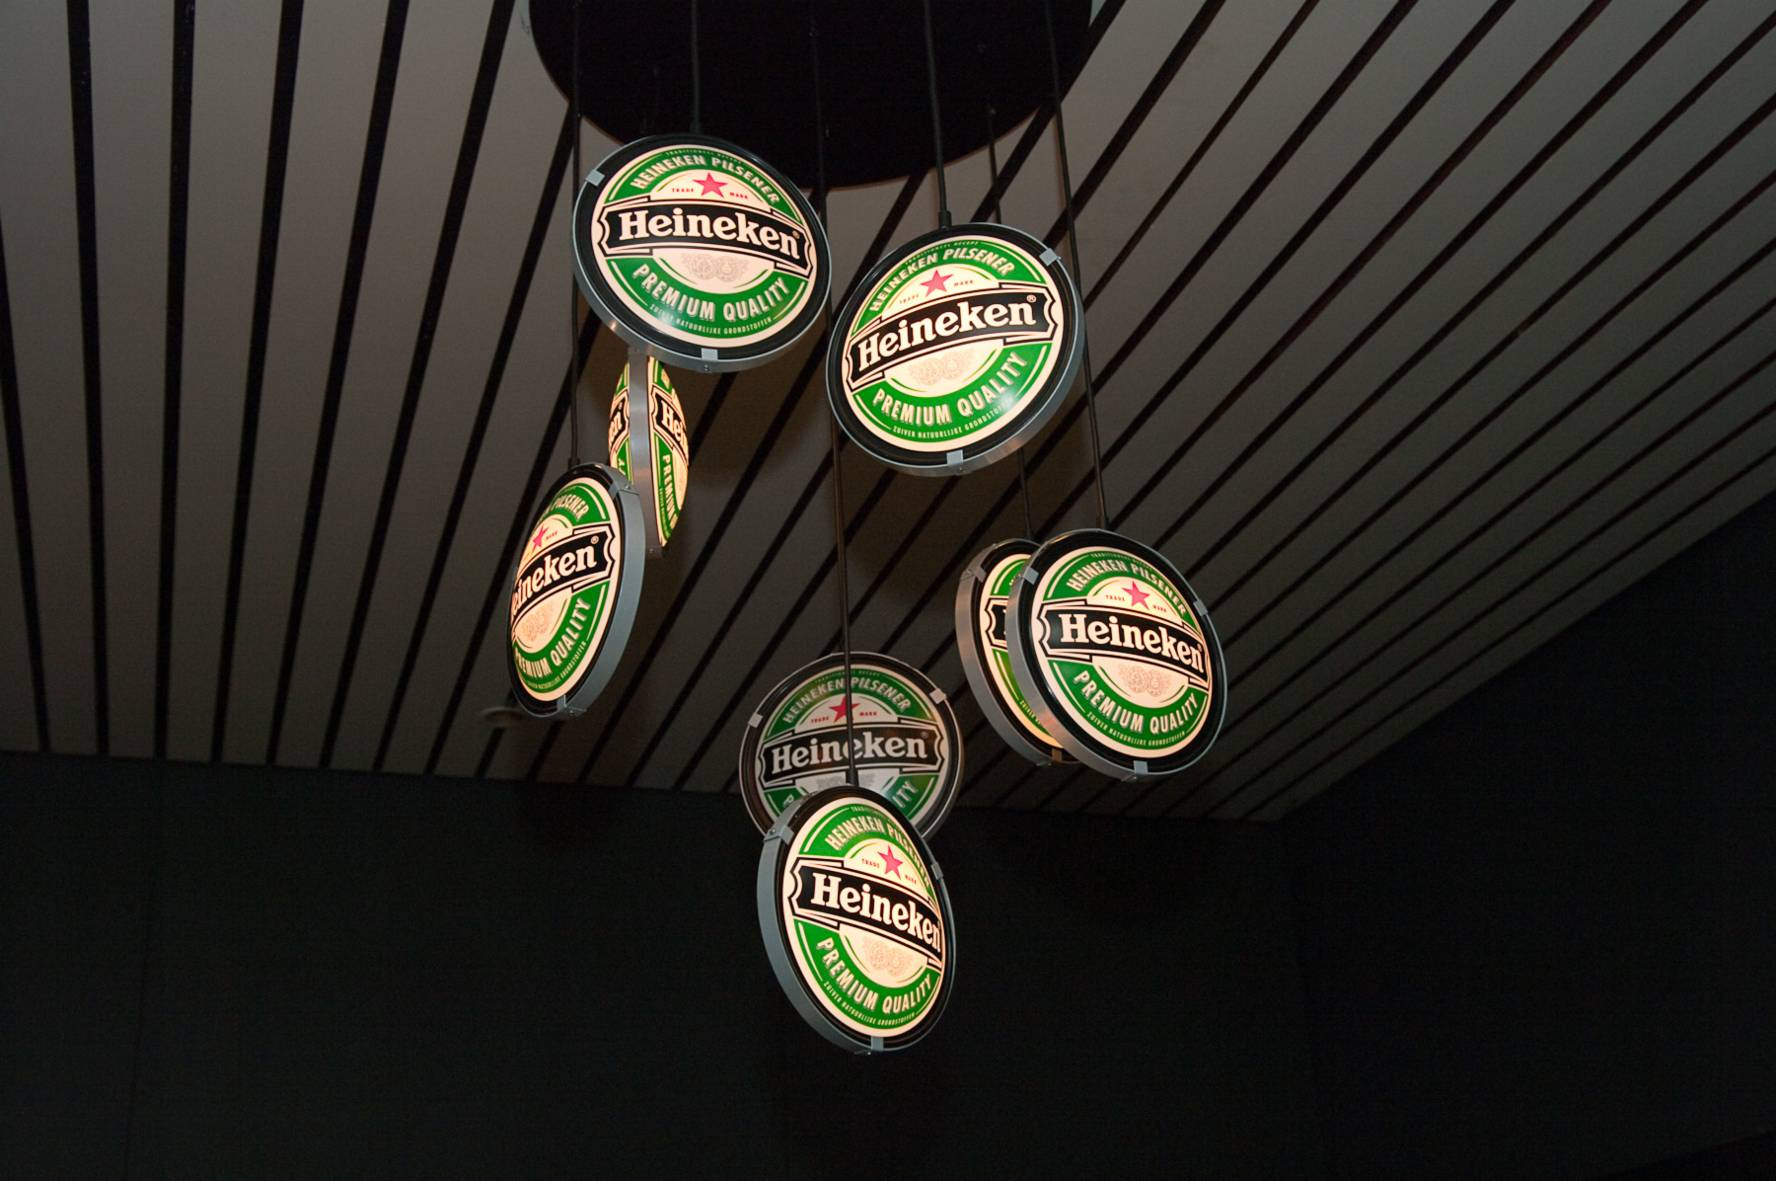 LekkersteBockBier2010 (1 of 172)